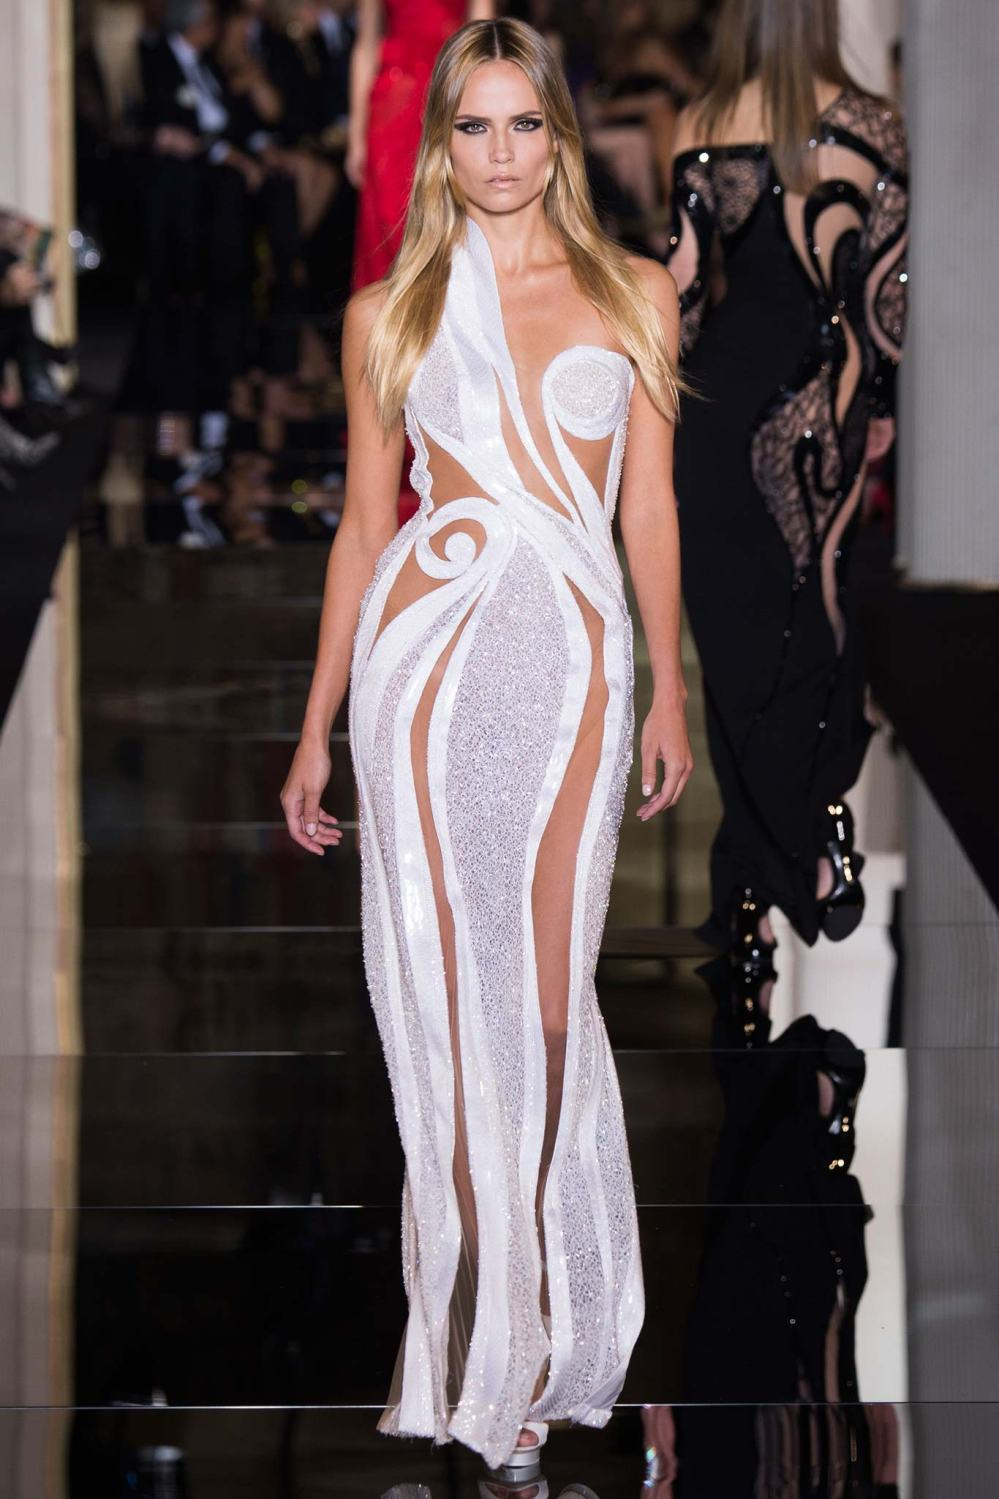 Atelier Versace, Spring/Summer 2015 Look 40  Model : Natasha Poly Photo: Kim Weston Arnold/Indigitalimages.com